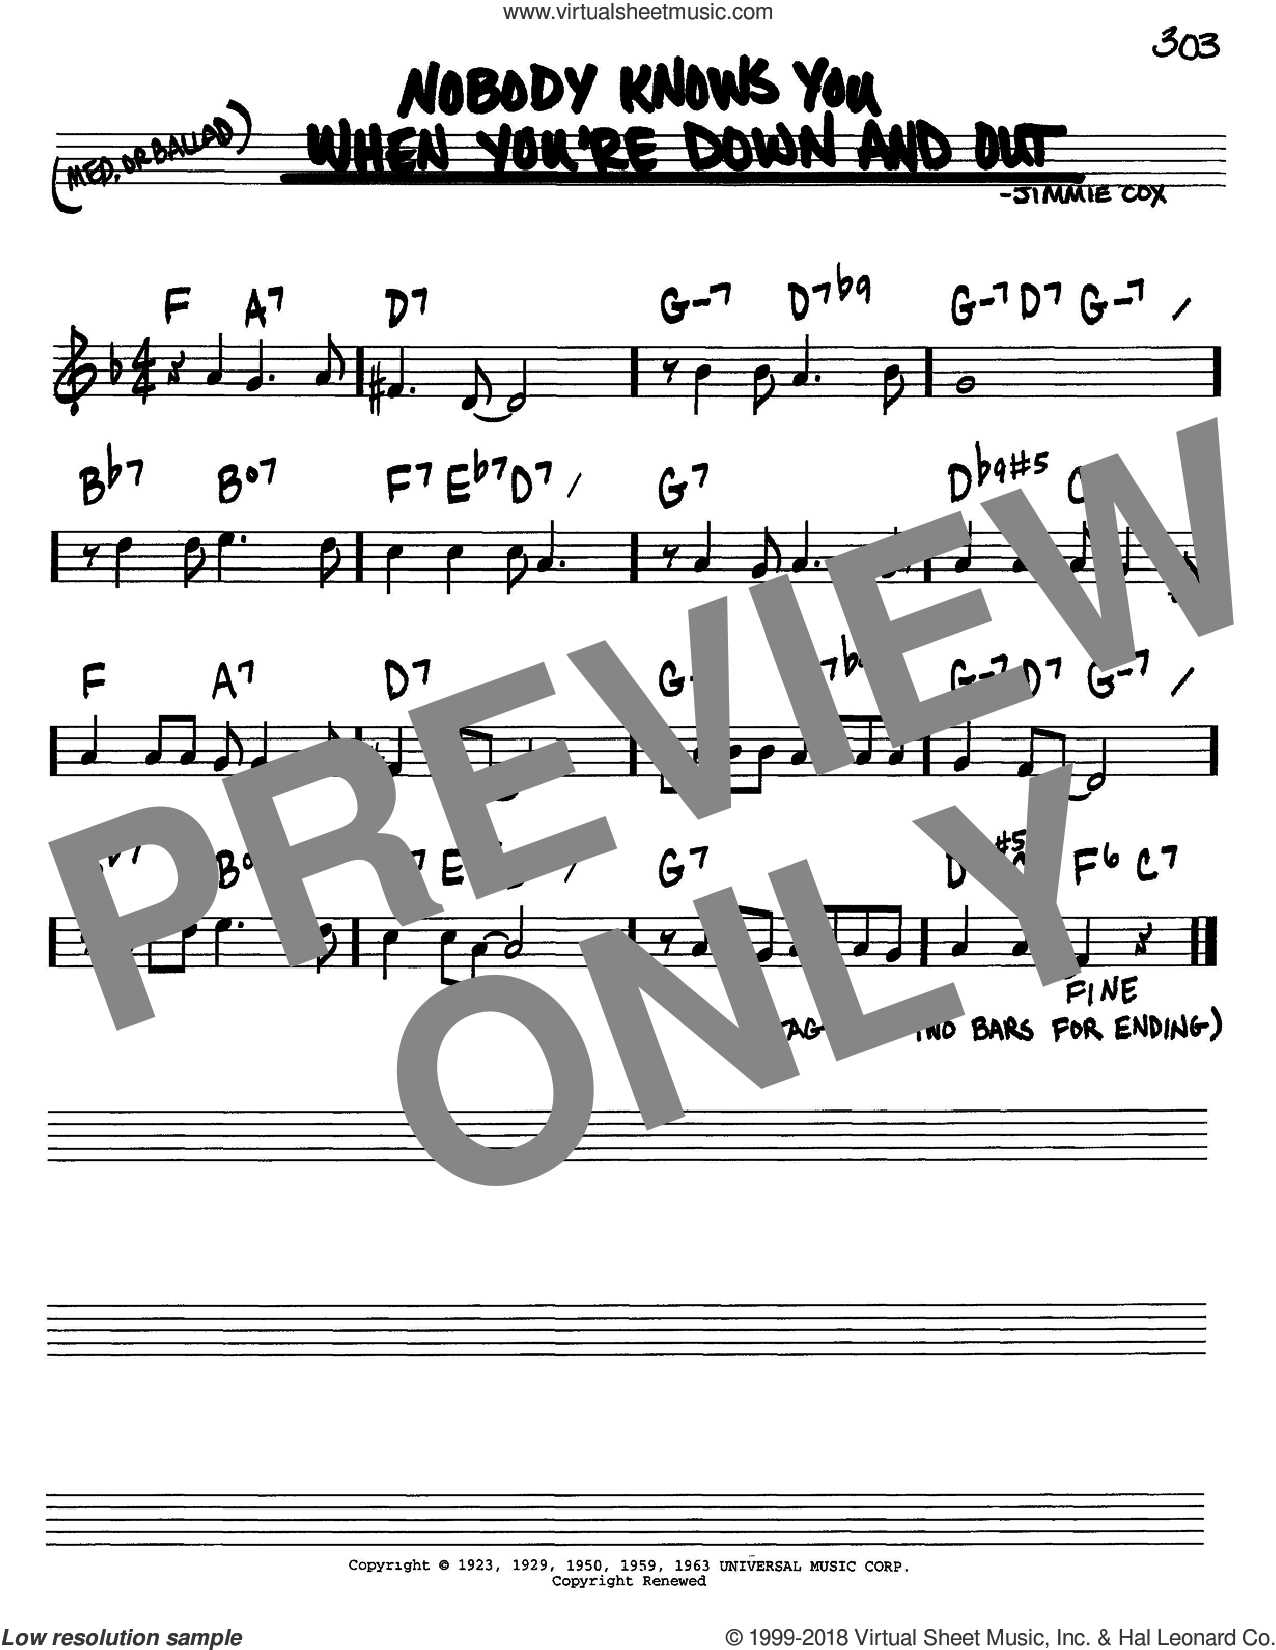 Nobody Knows You When You're Down And Out sheet music for voice and other instruments (in C) by Jimmie Cox, intermediate skill level